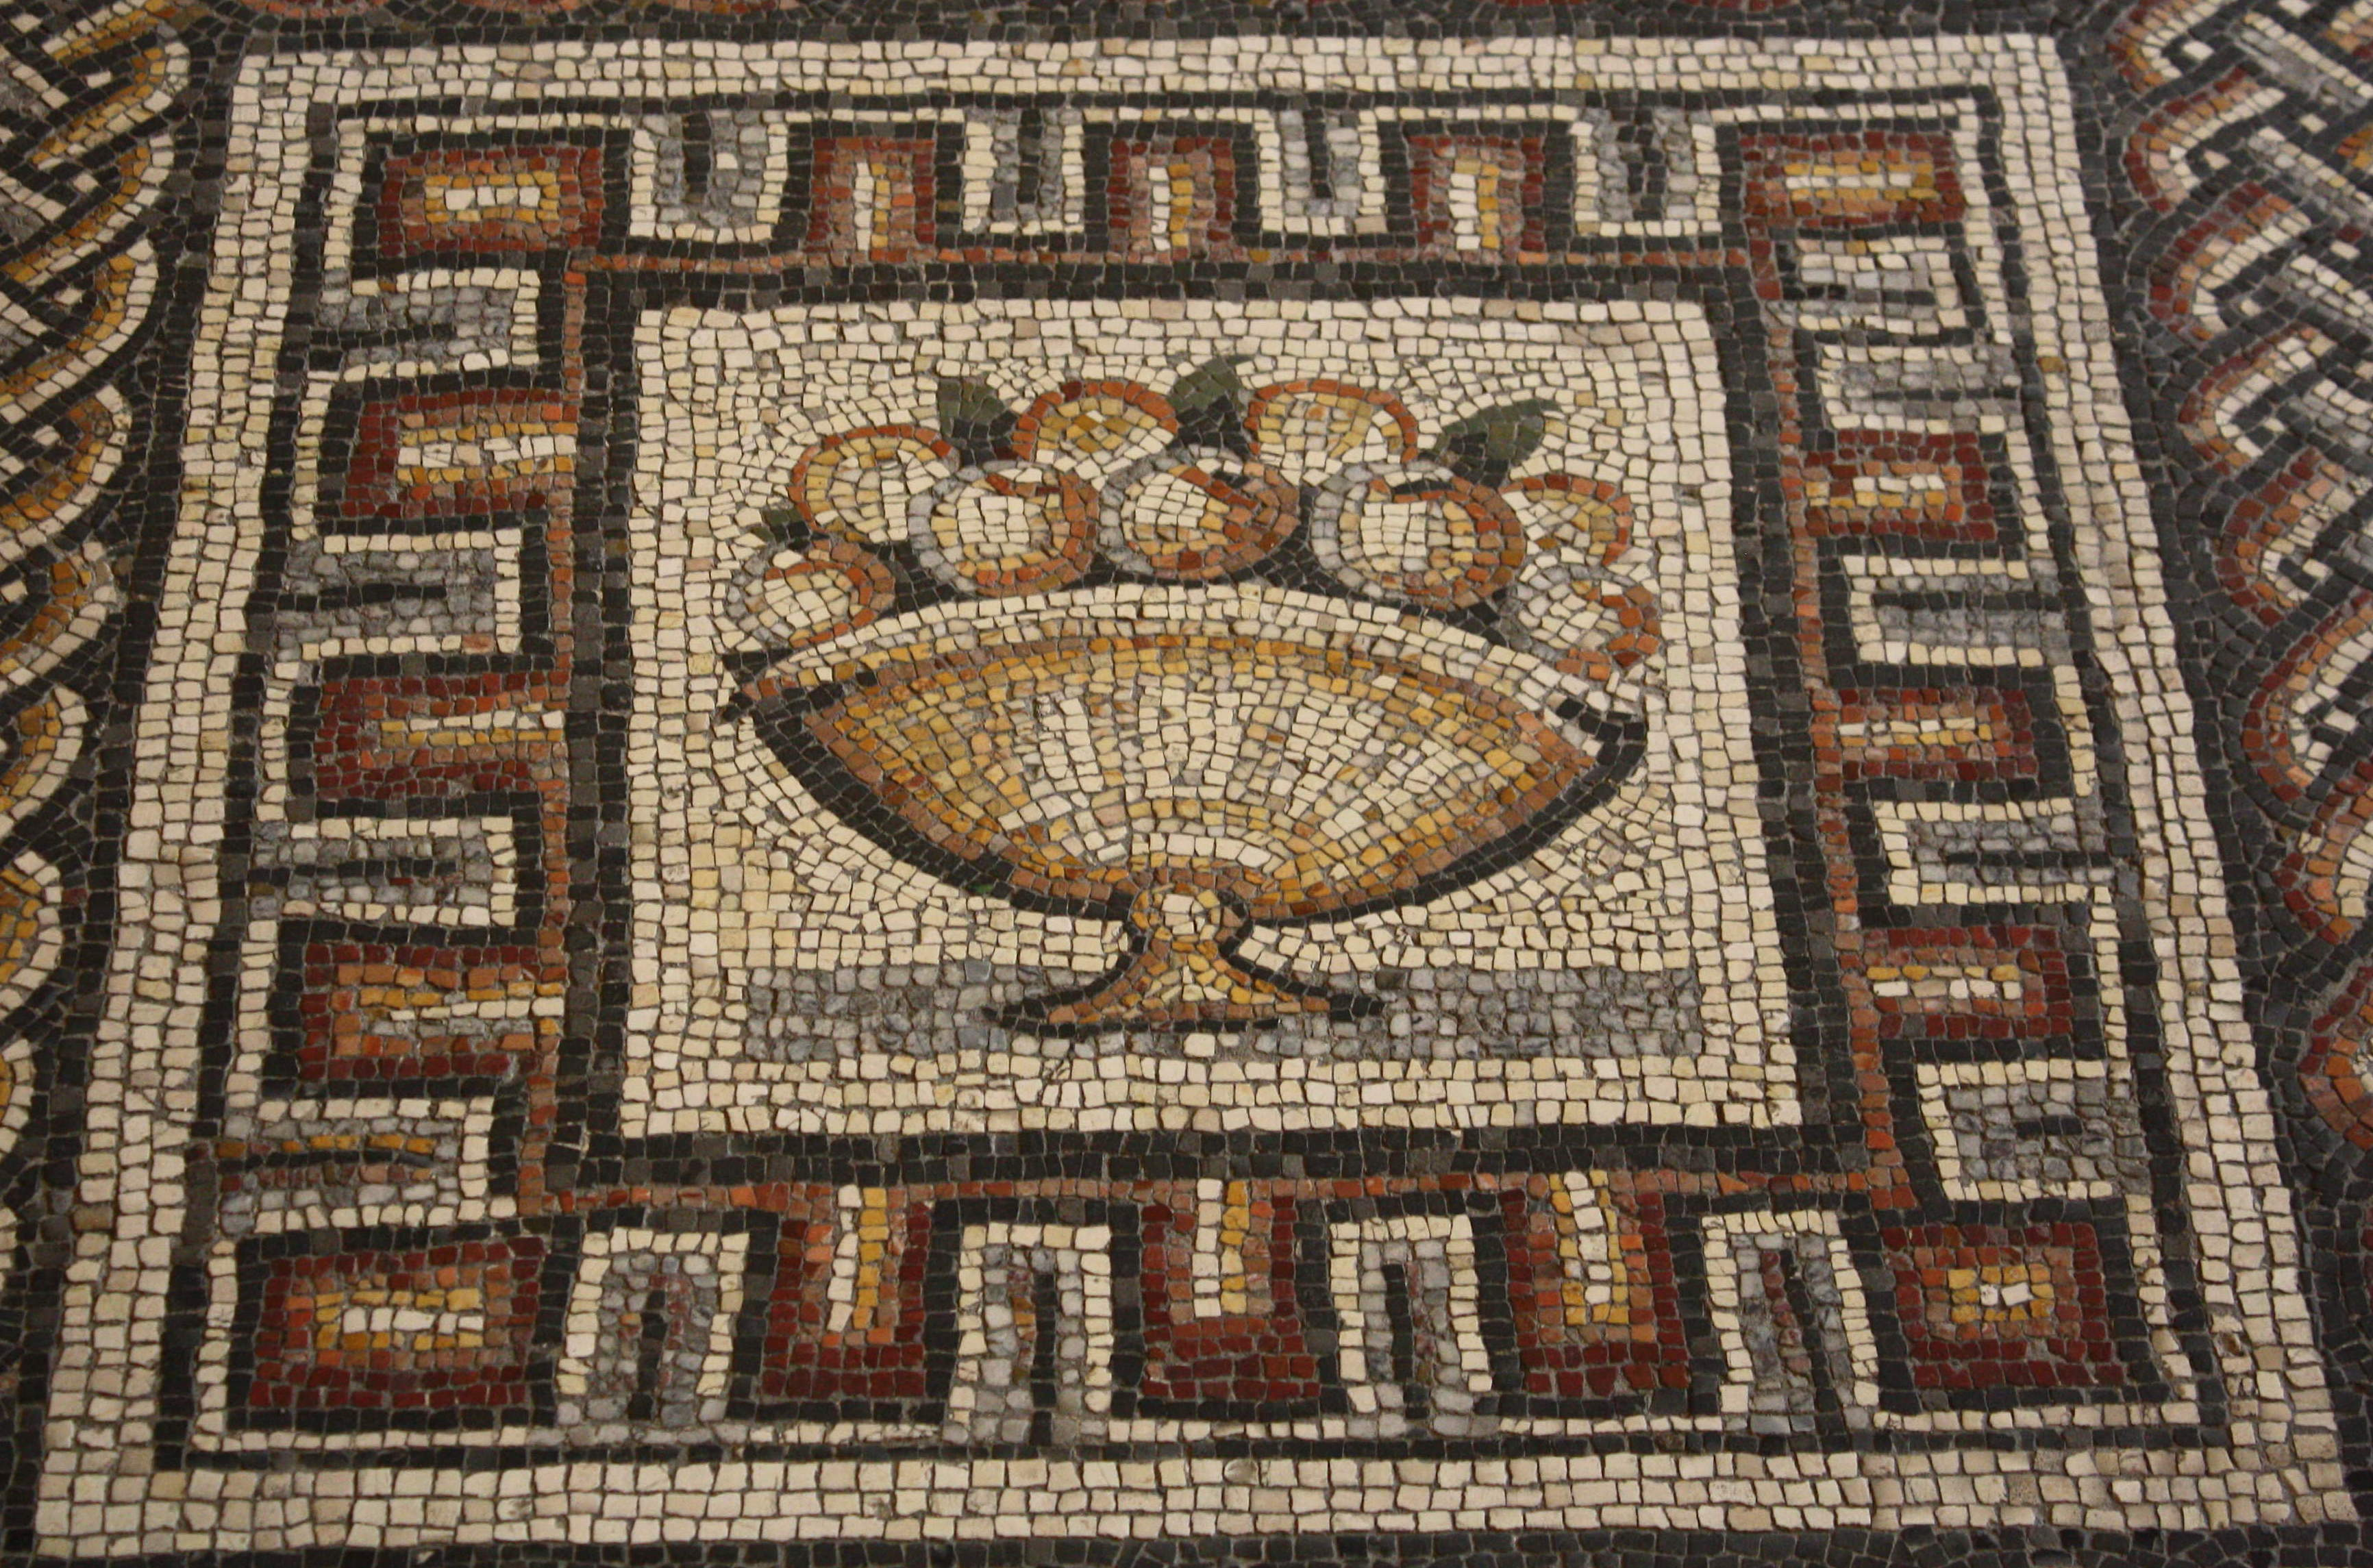 Fruit, Roman Mosaic (Illustration) - Ancient History Encyclopedia